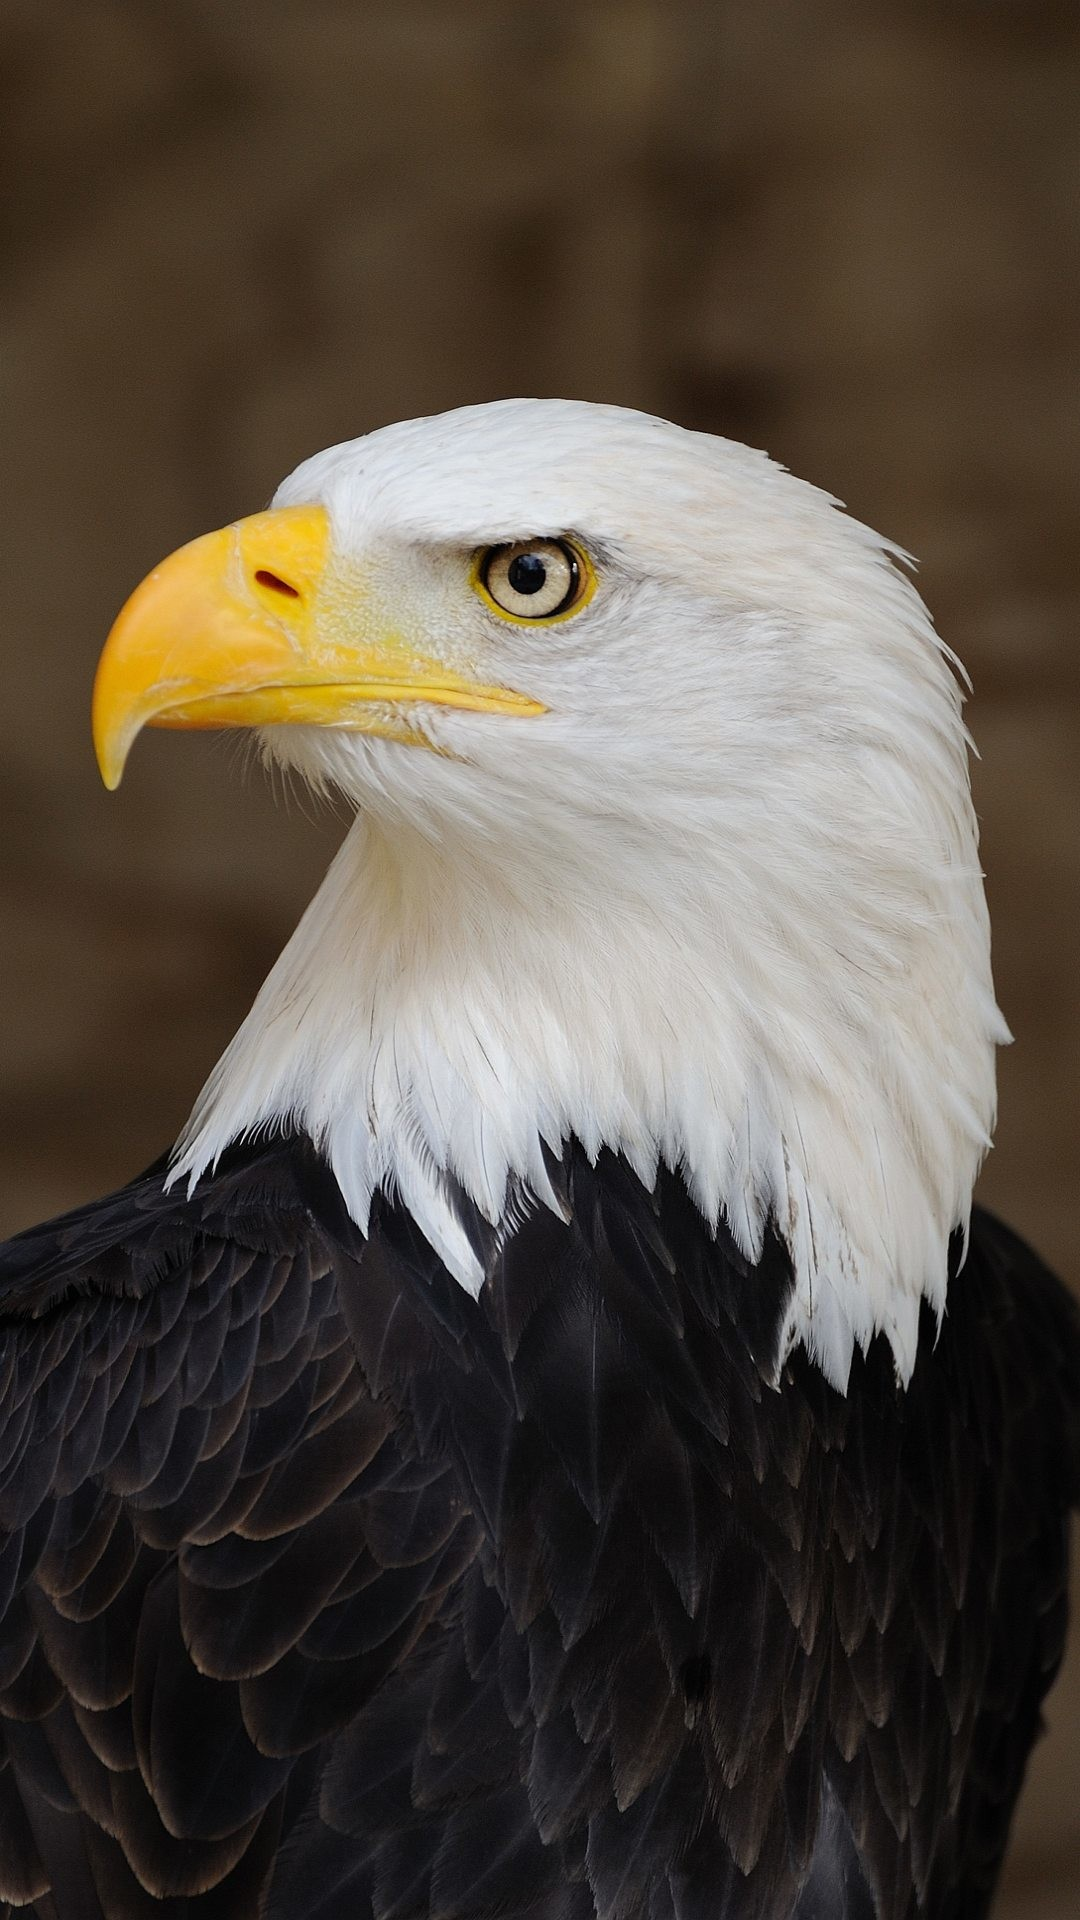 1080x1920 Wallpaper full hd 1080 x 1920 smartphone eagle america symbol